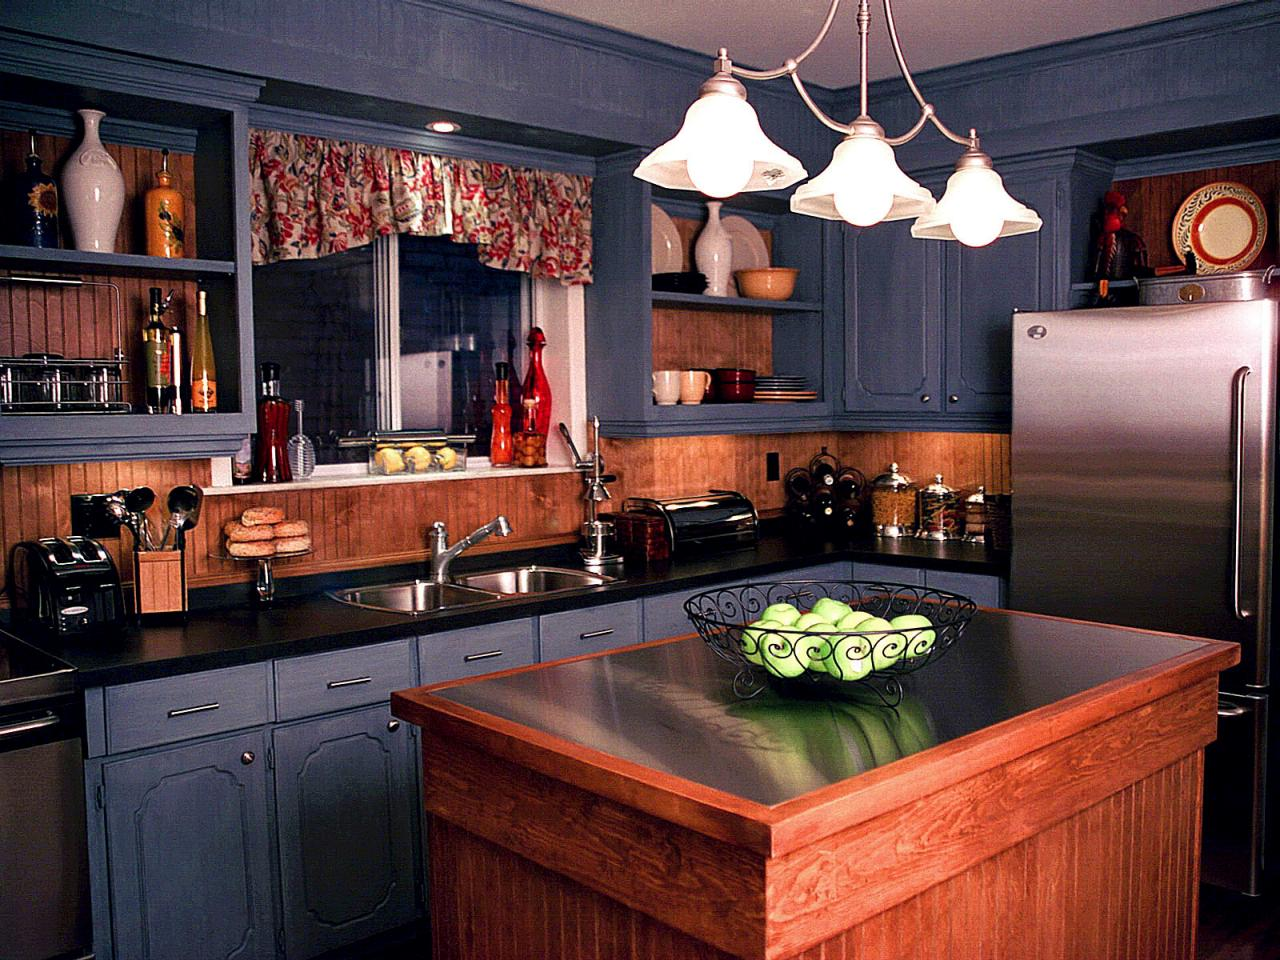 Older Home Kitchen Remodeling Ideas with Wood Small Island